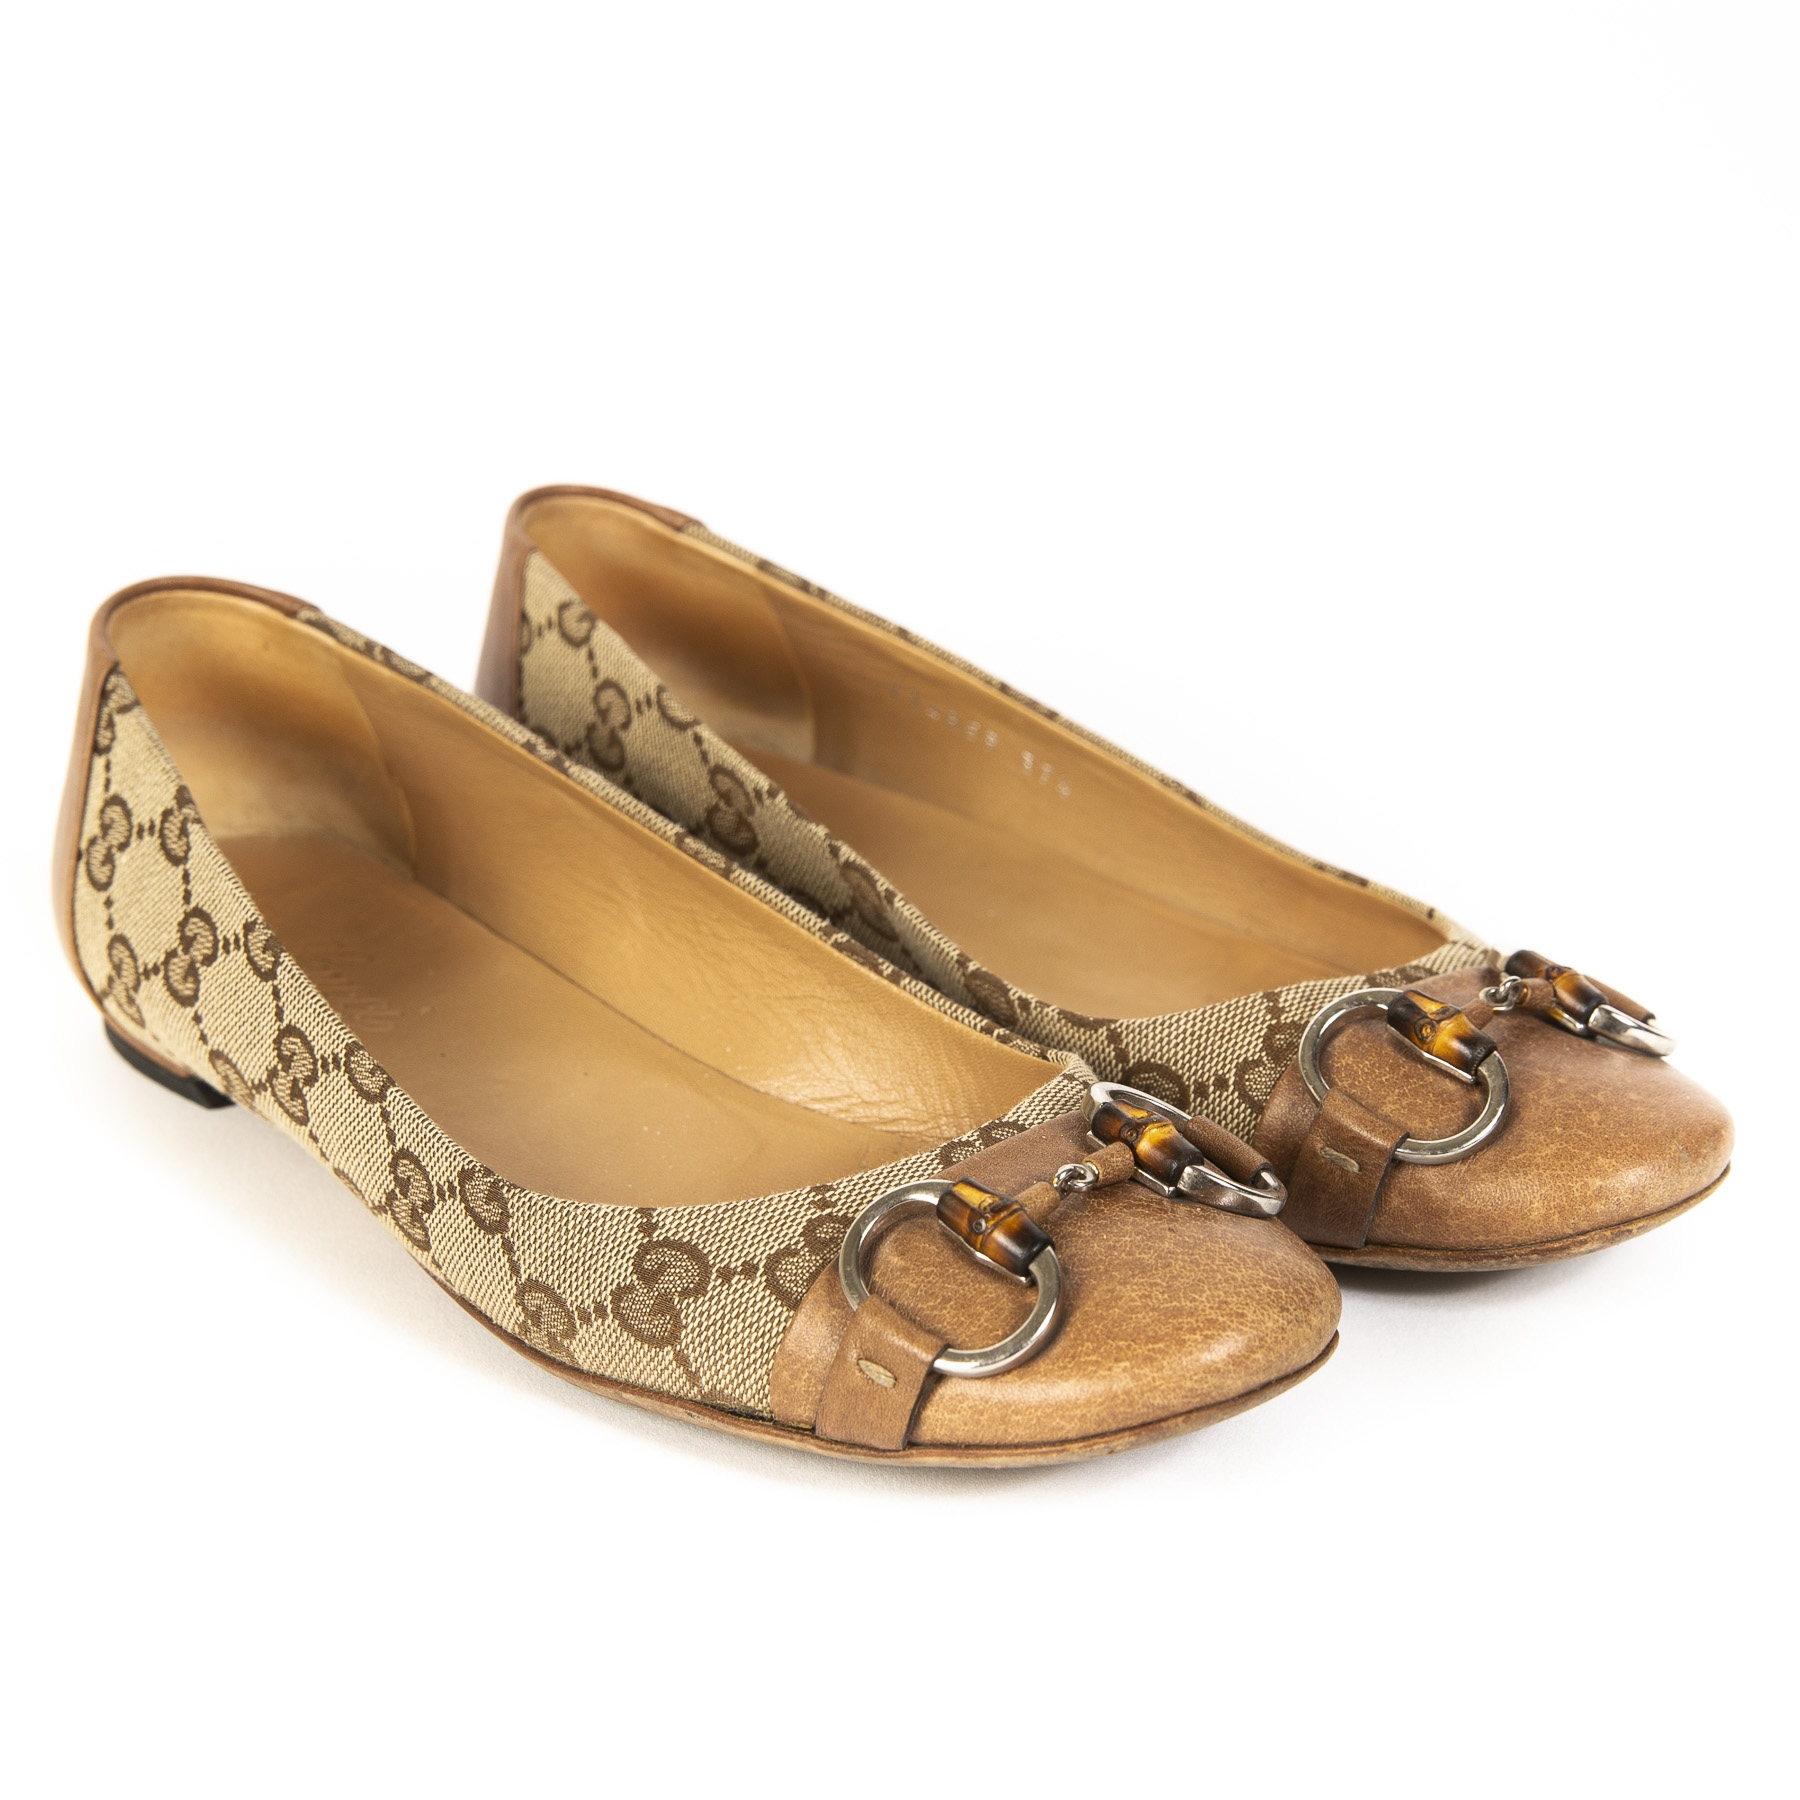 8a1a541fe095 Buy authentic Gucci shoes at the right price at LabelLOV vintage webshop.